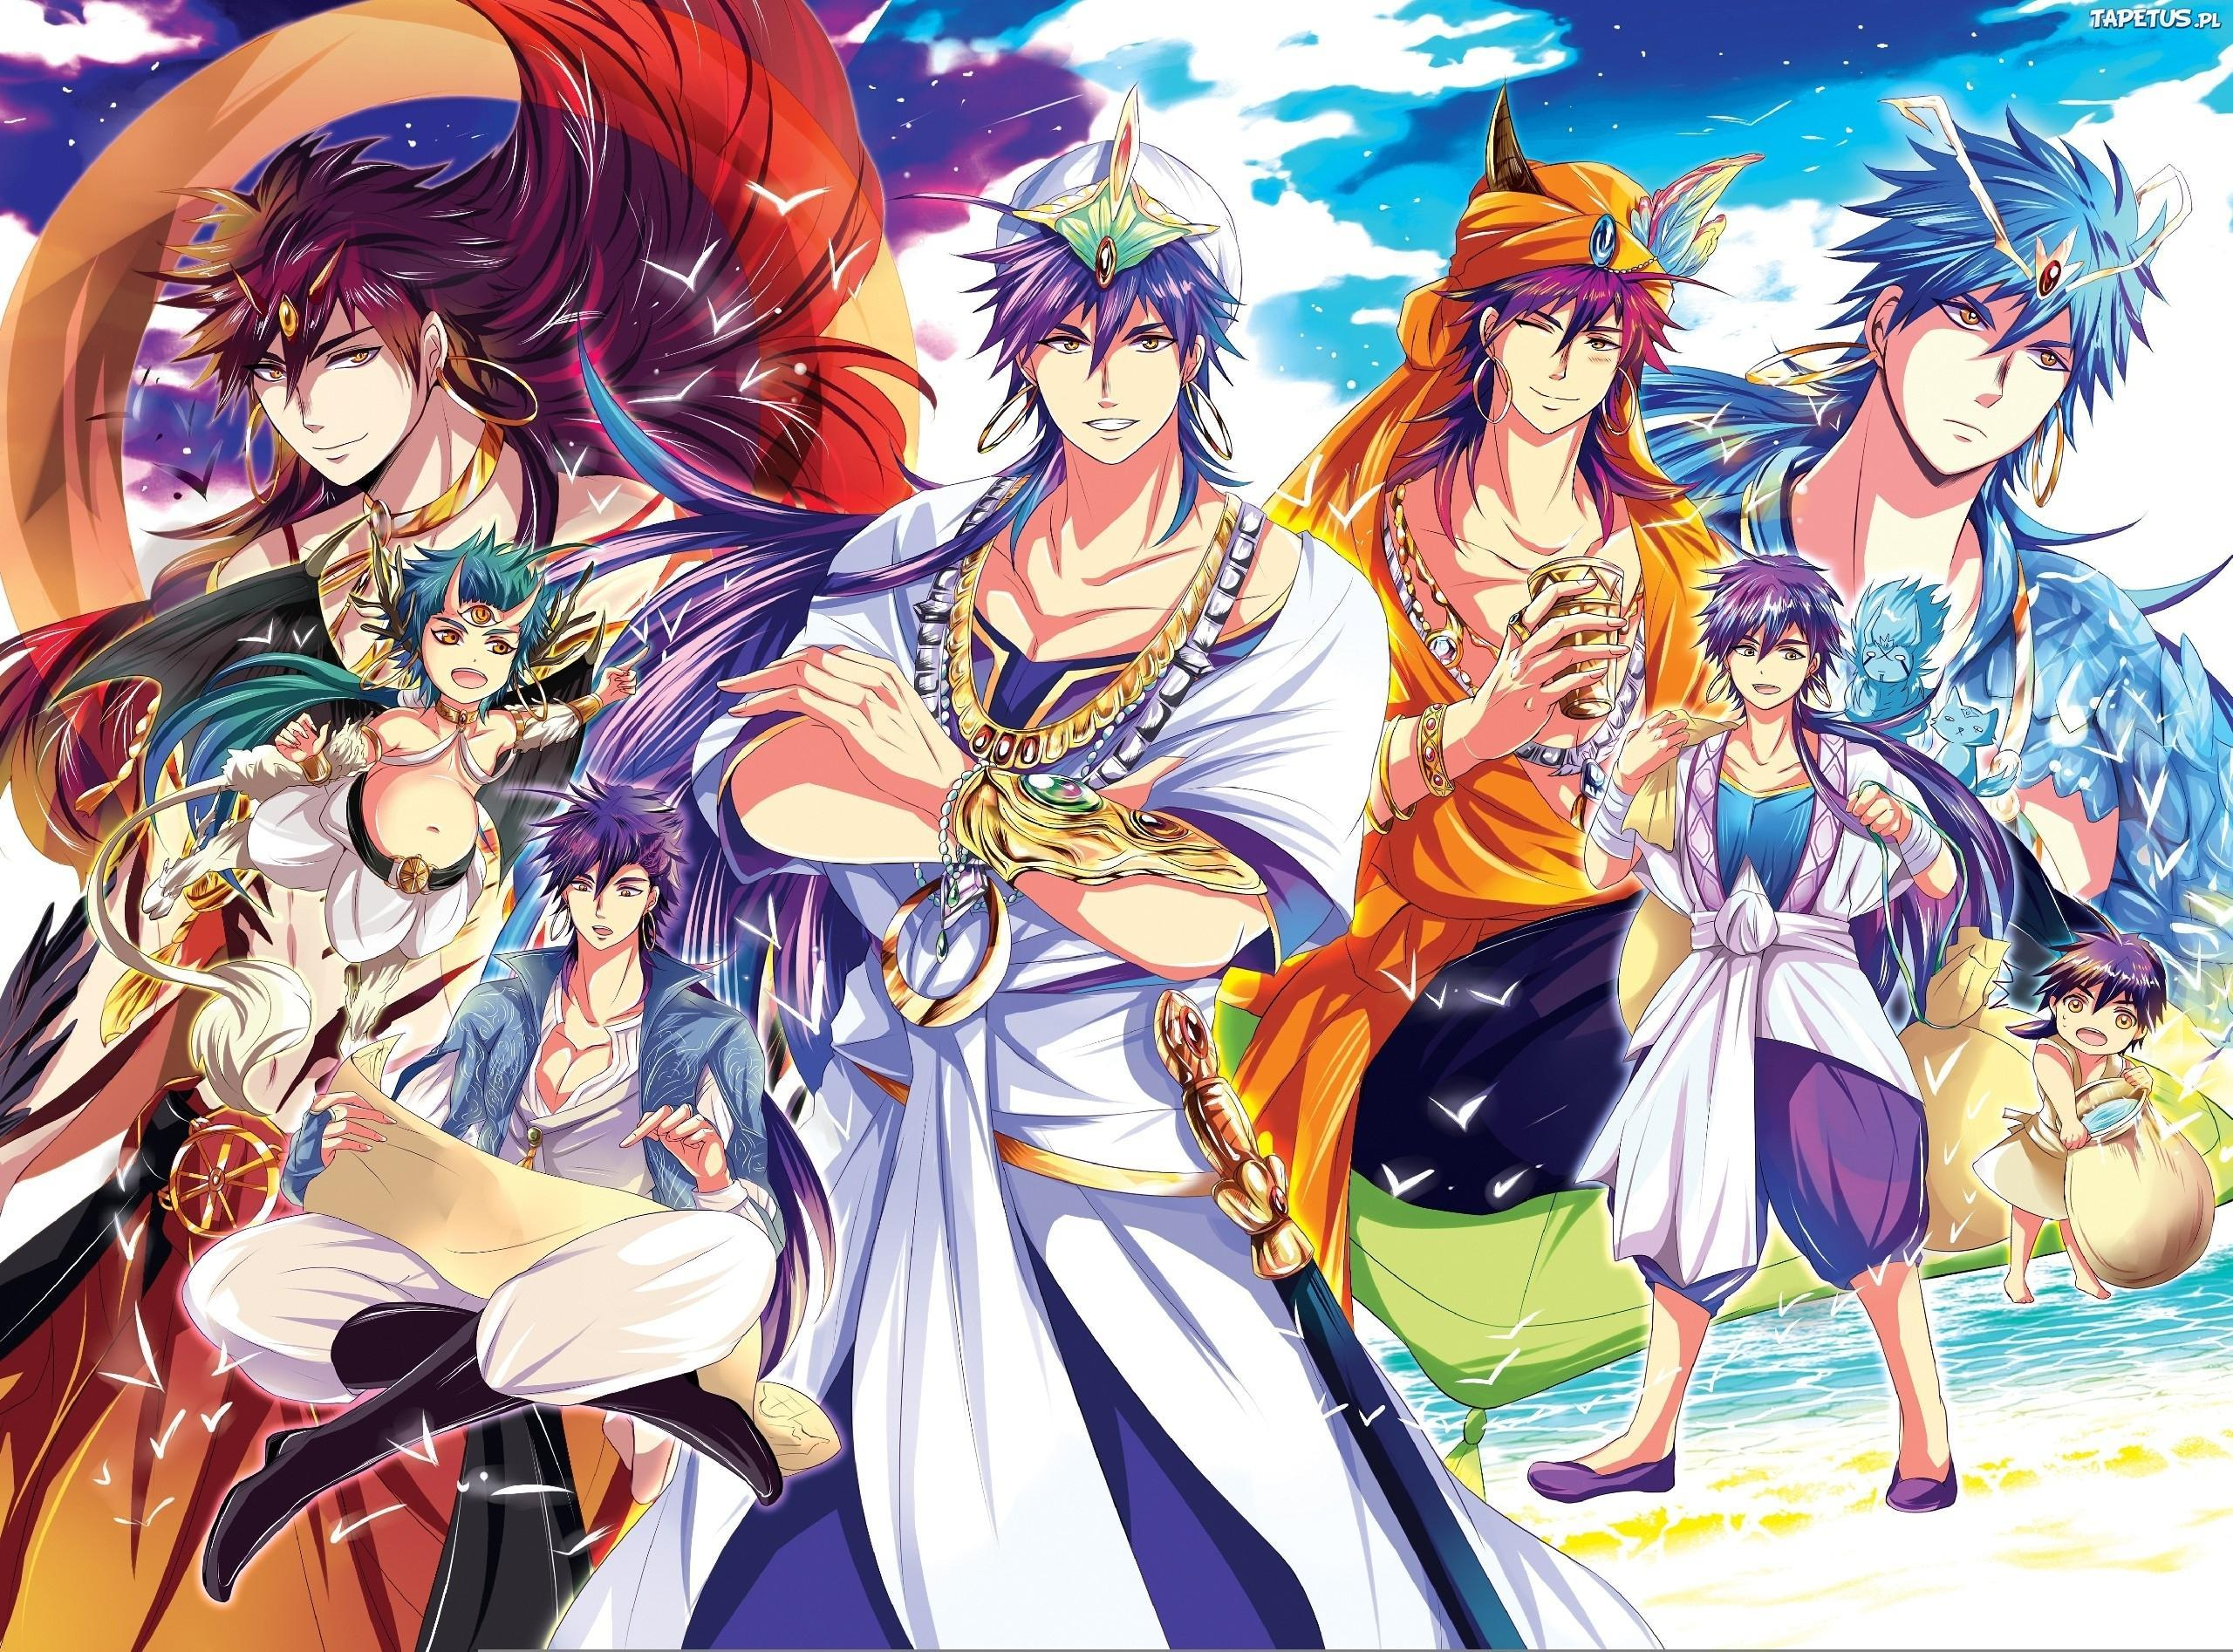 The Adventures Of Sinbad Wallpapers - - Best fantasy anime